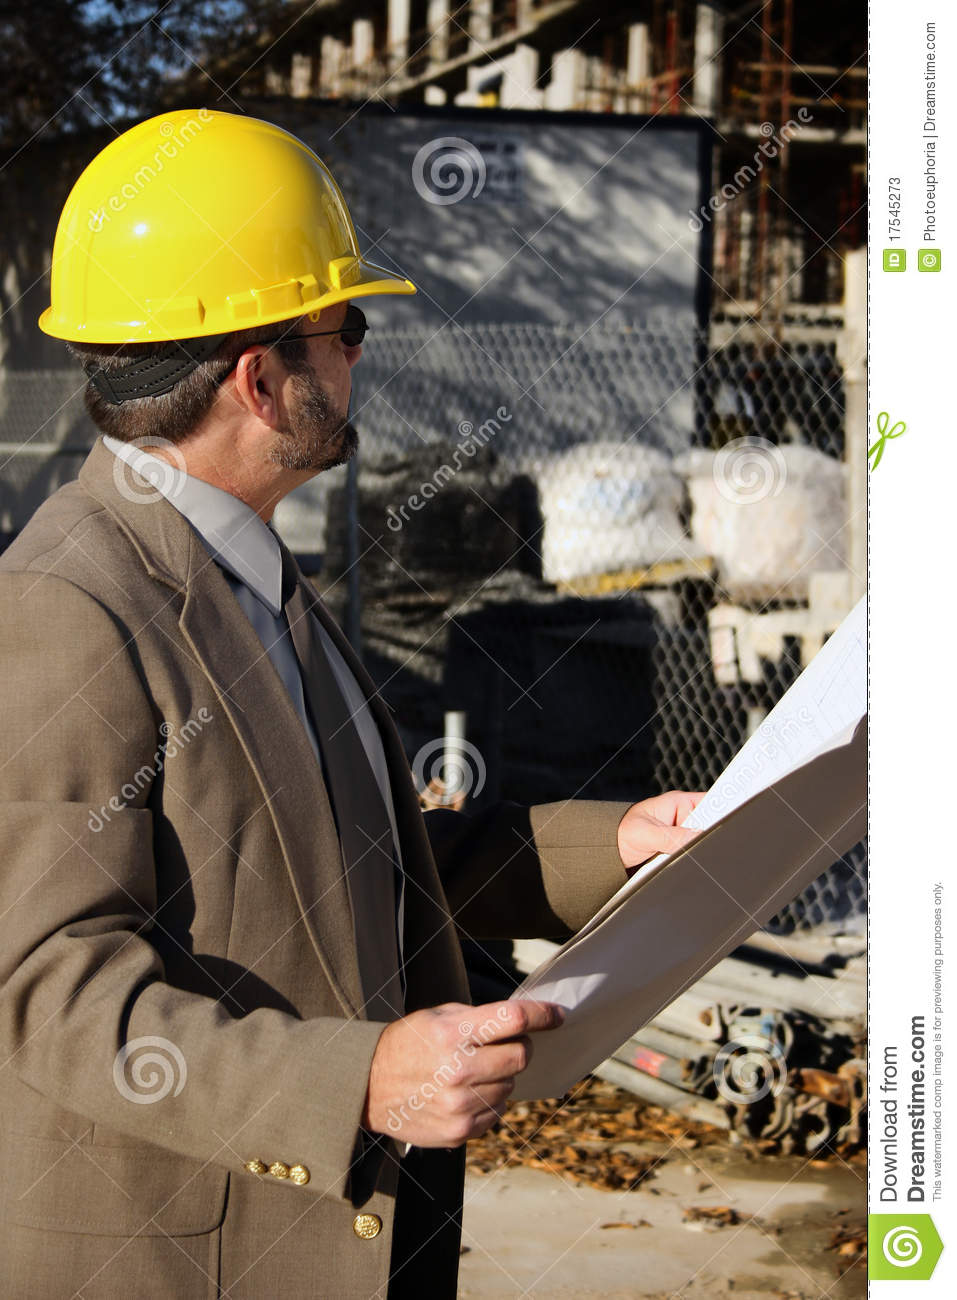 Job Project Engineer Construction Worker Foreman Stock Photos - Image: 17545273